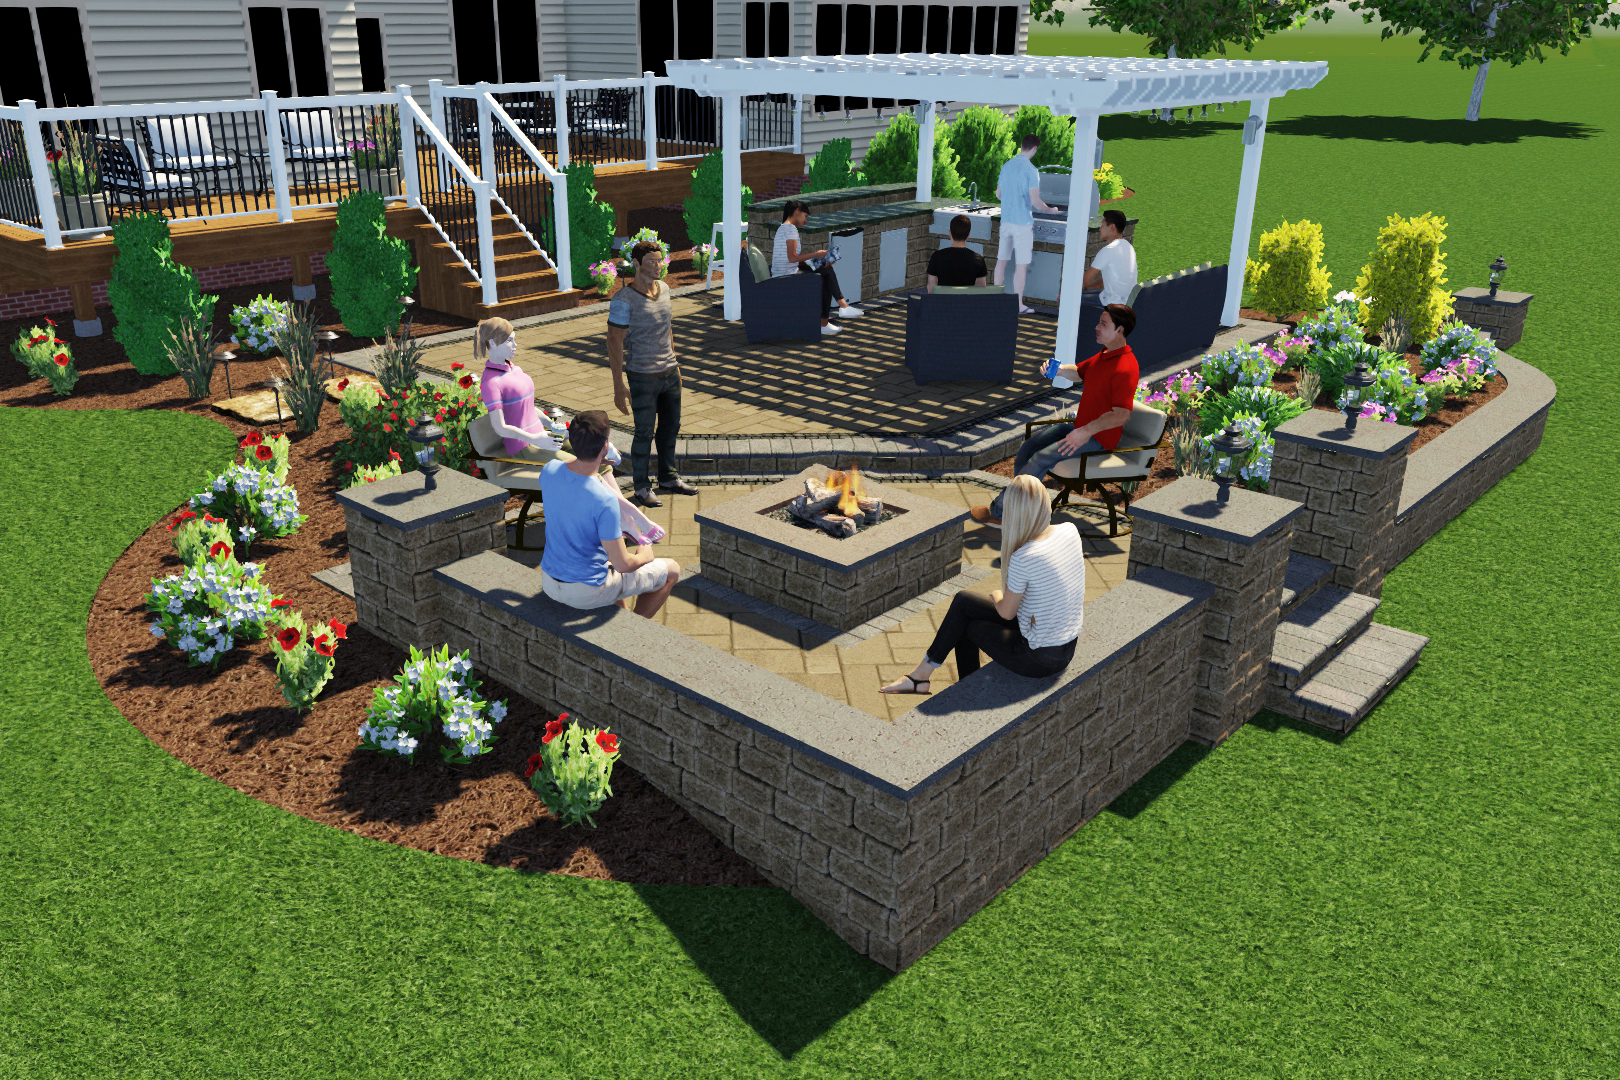 friends in backyard enjoying new hardscape design